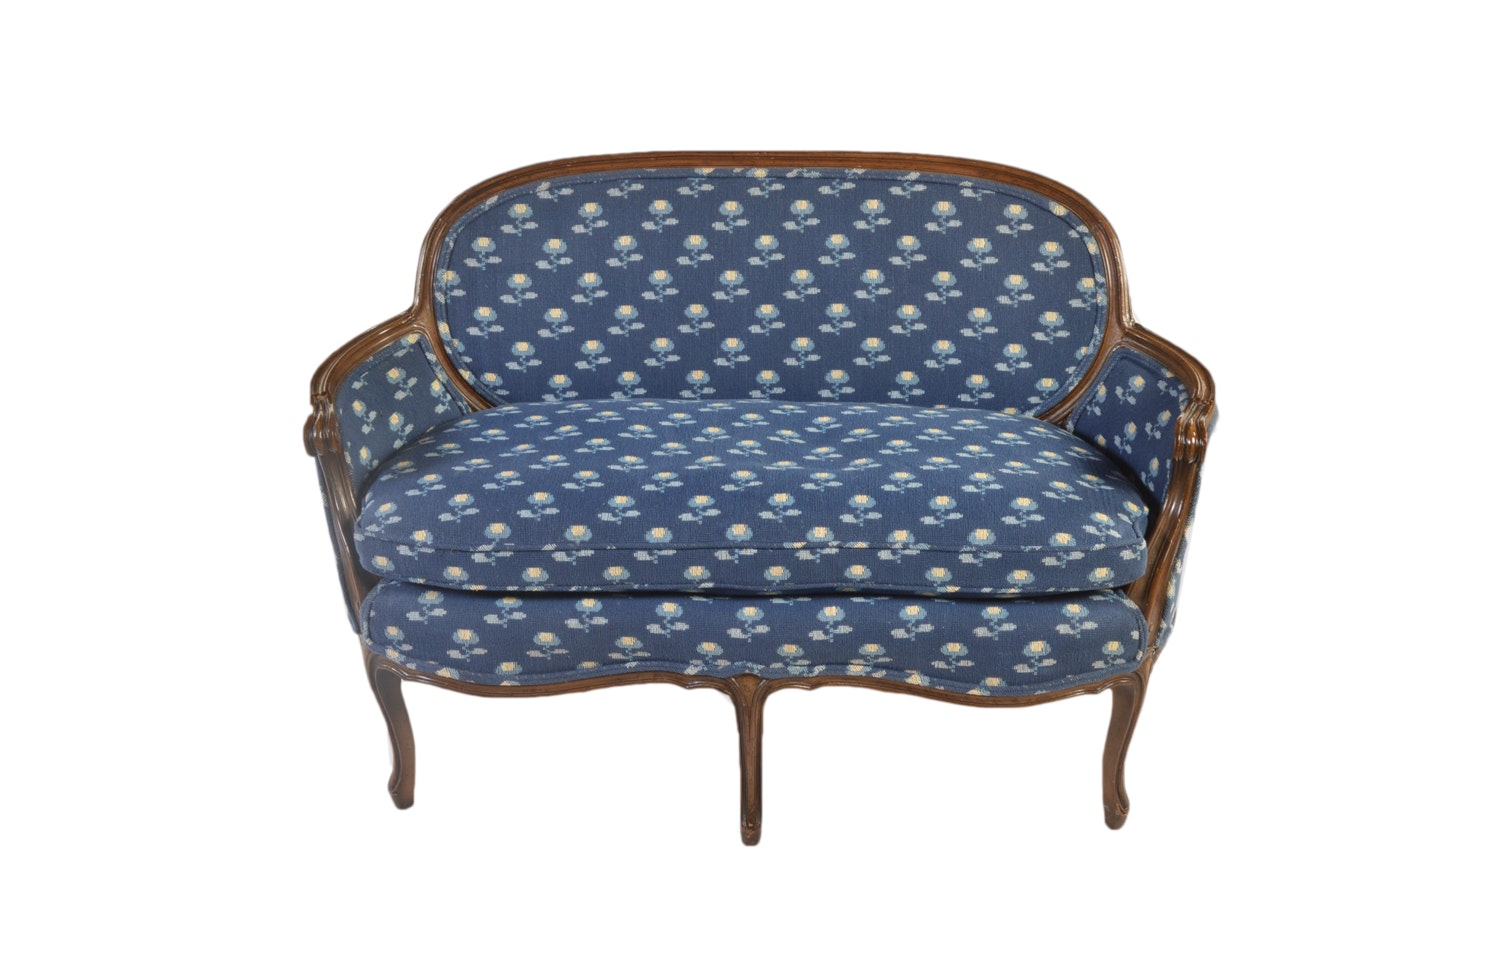 Vintage French Provincial Style Upholstered Settee